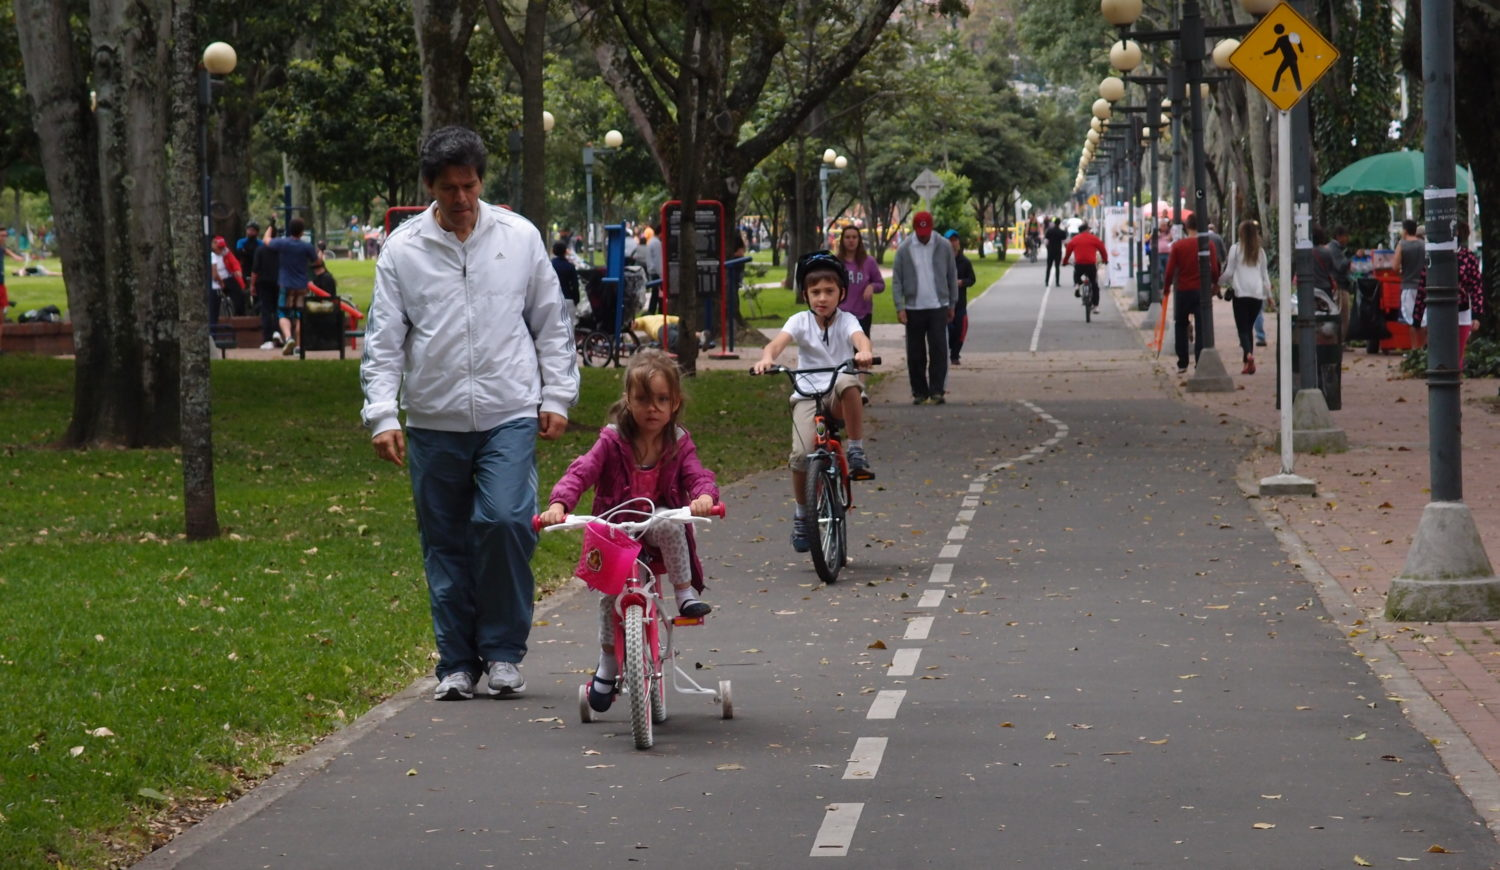 A man walking behind a young girl riding a bike in a bike path